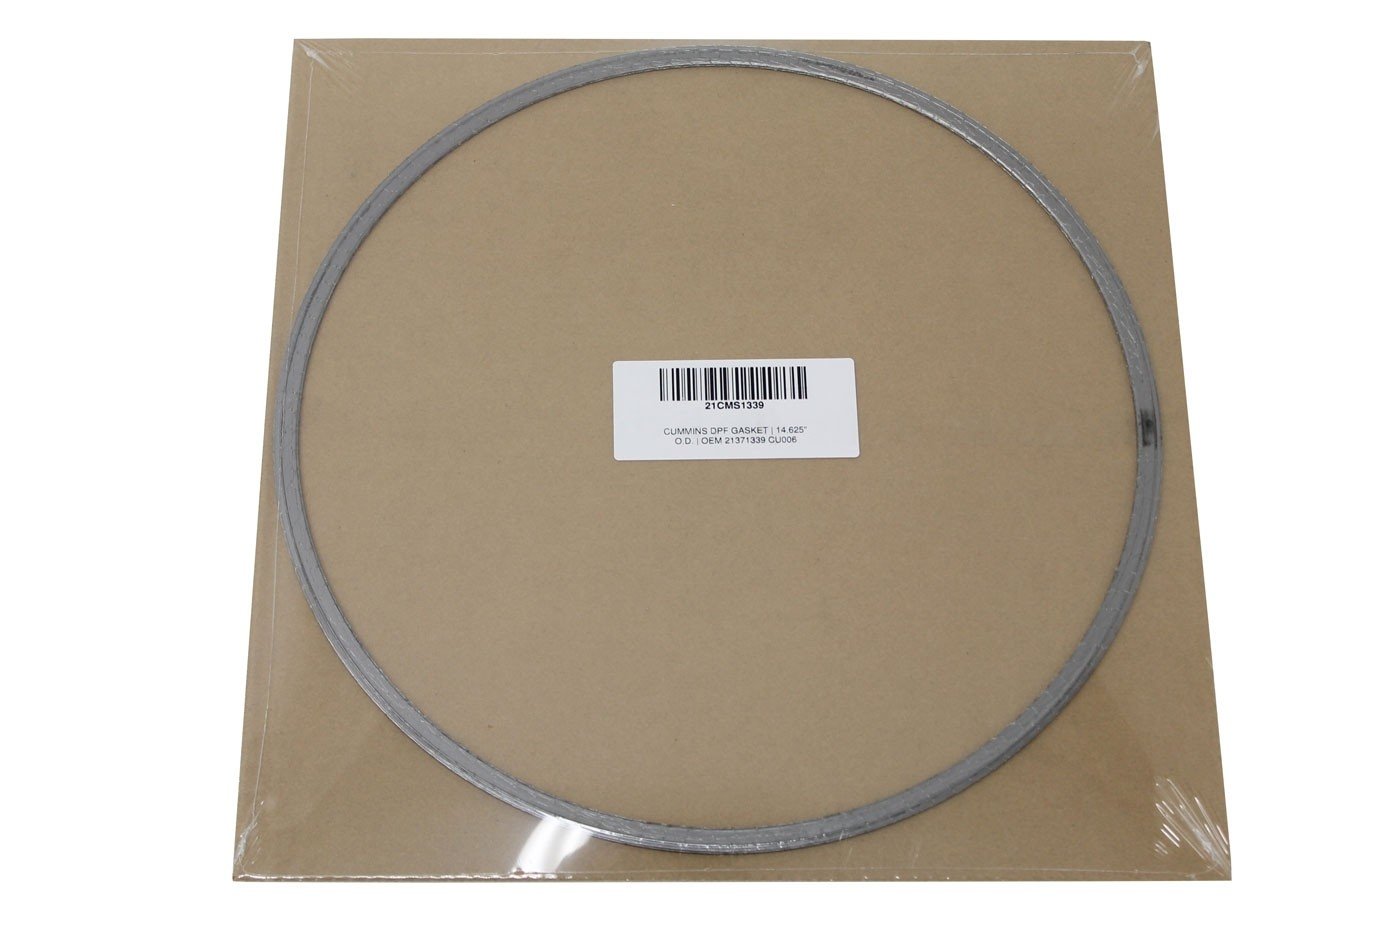 """CUMMINS DPF GASKET 